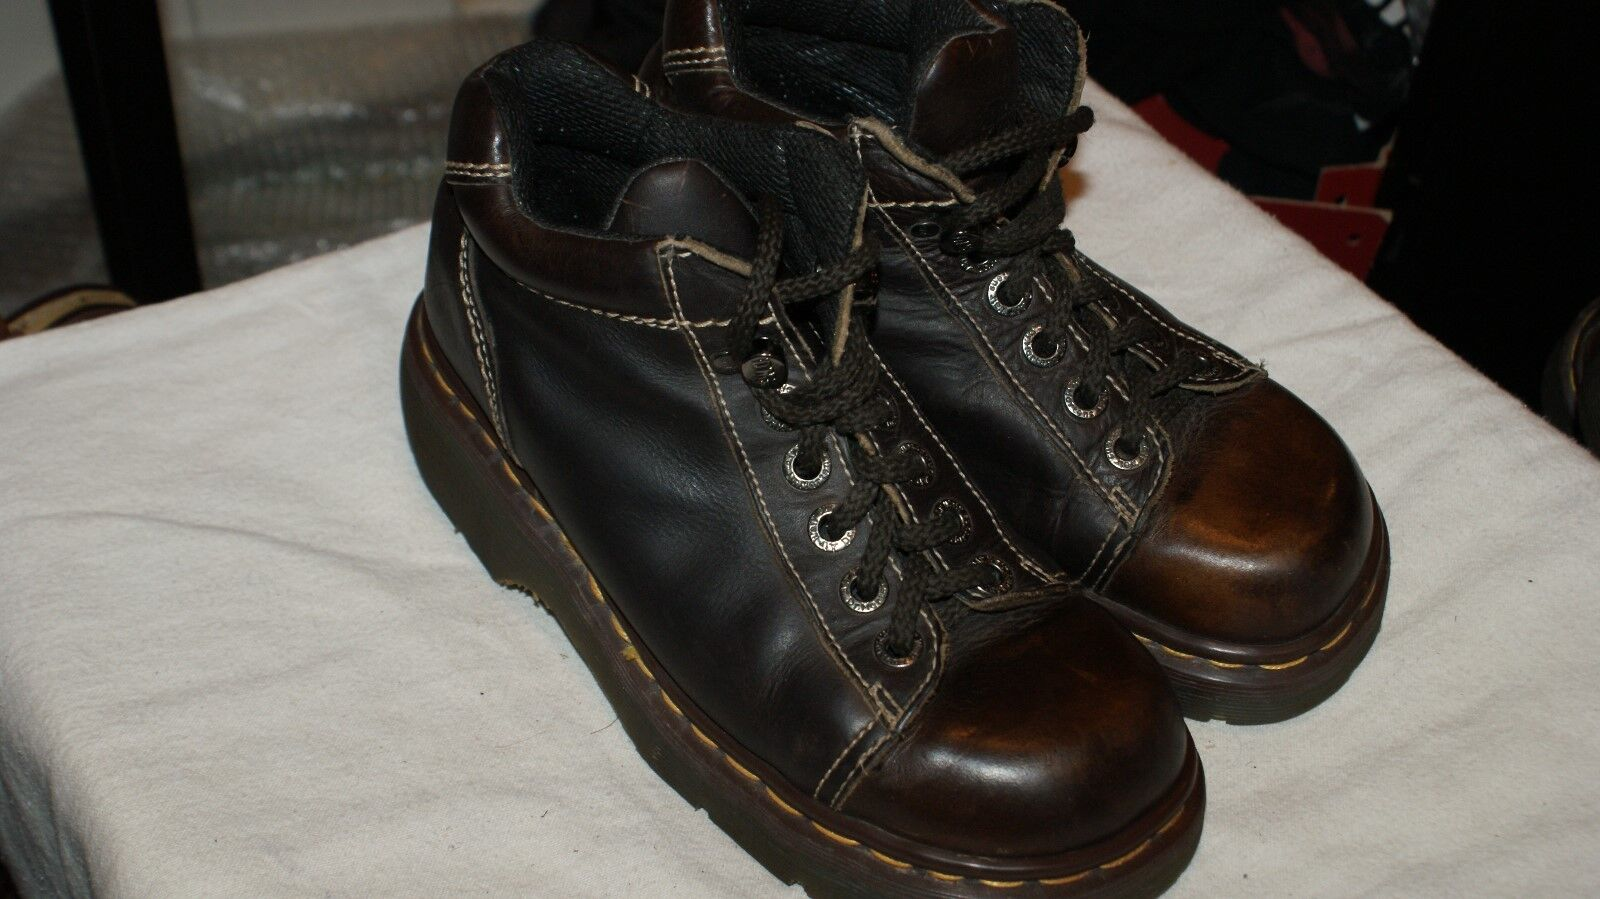 Vint Dr Doc Martens Mens Boots 8542 US Sz 6 UK Sz 5 Womens Sz 7 England Brown